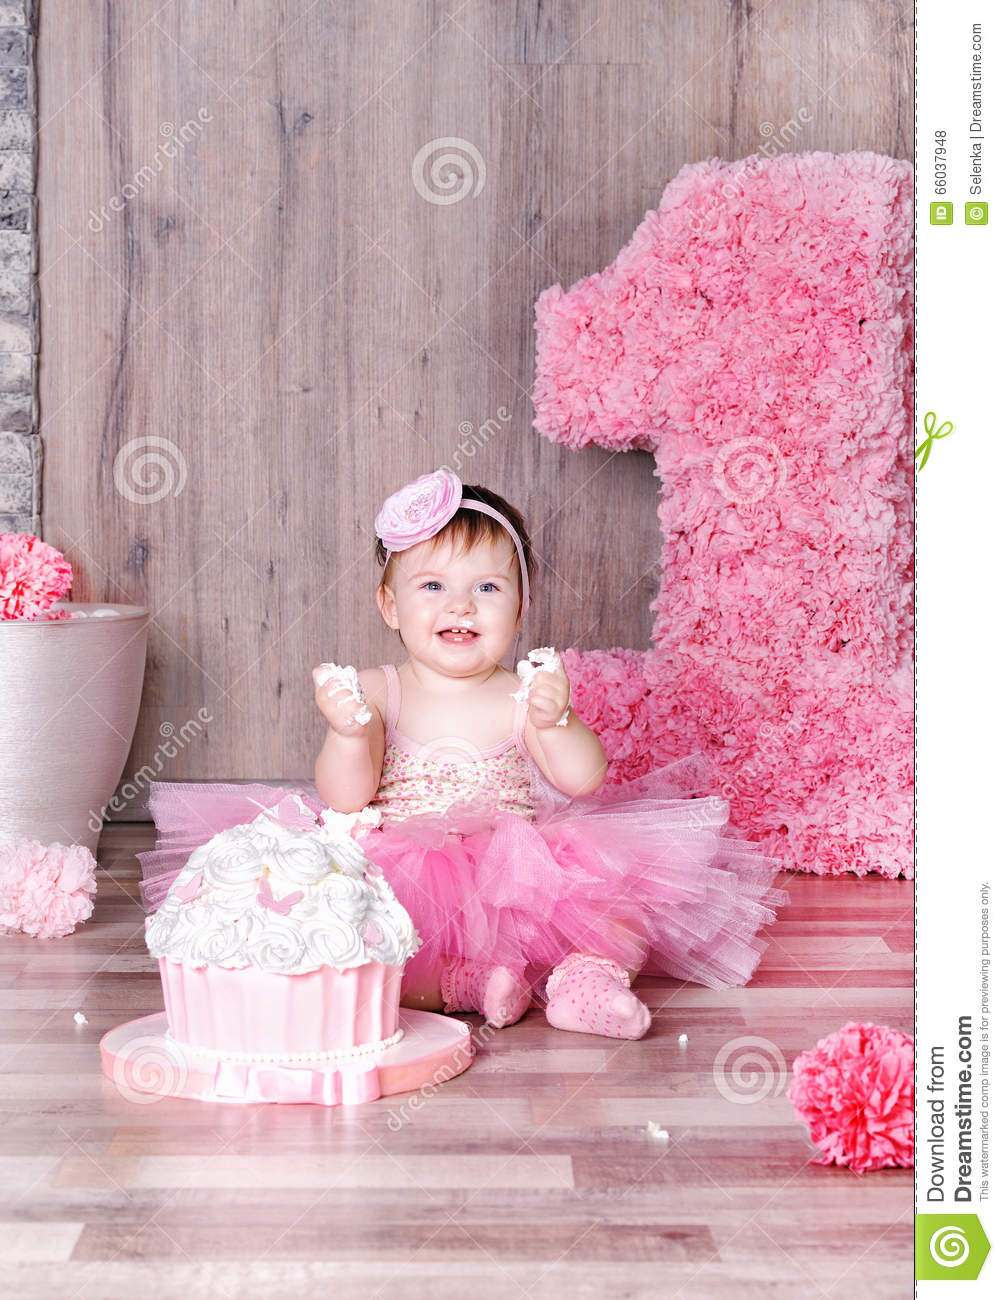 Girl First Birthday Outfit Pinterest: Cute Baby Girl Eating First Birthday Cake. Stock Photo